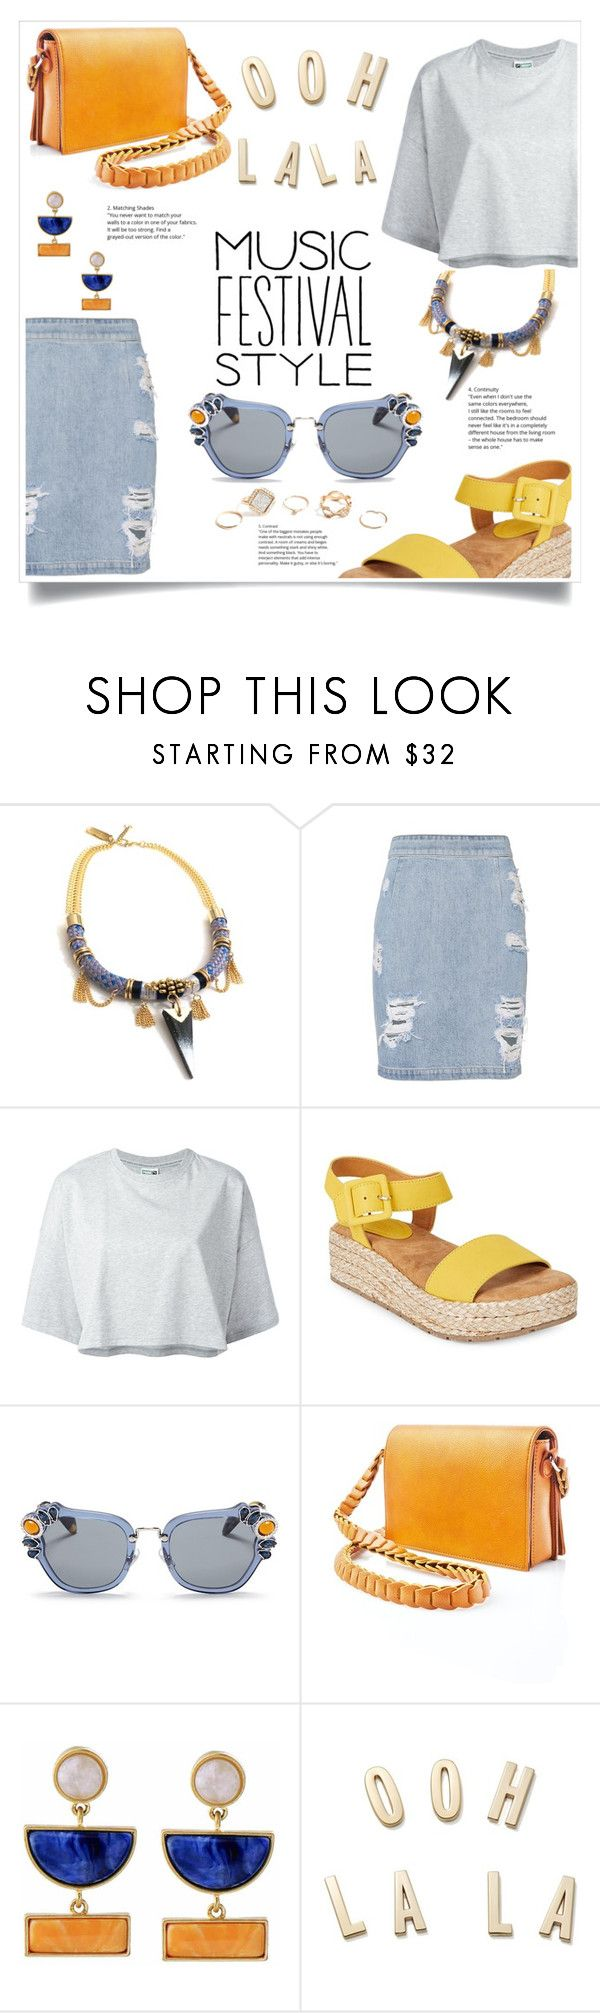 """""""Untitled #139"""" by ellaa-h ❤ liked on Polyvore featuring Celine H2o, IRO, Puma, Kenneth Cole Reaction, Miu Miu, Street Level, Kakao By K, Kate Spade and GUESS"""